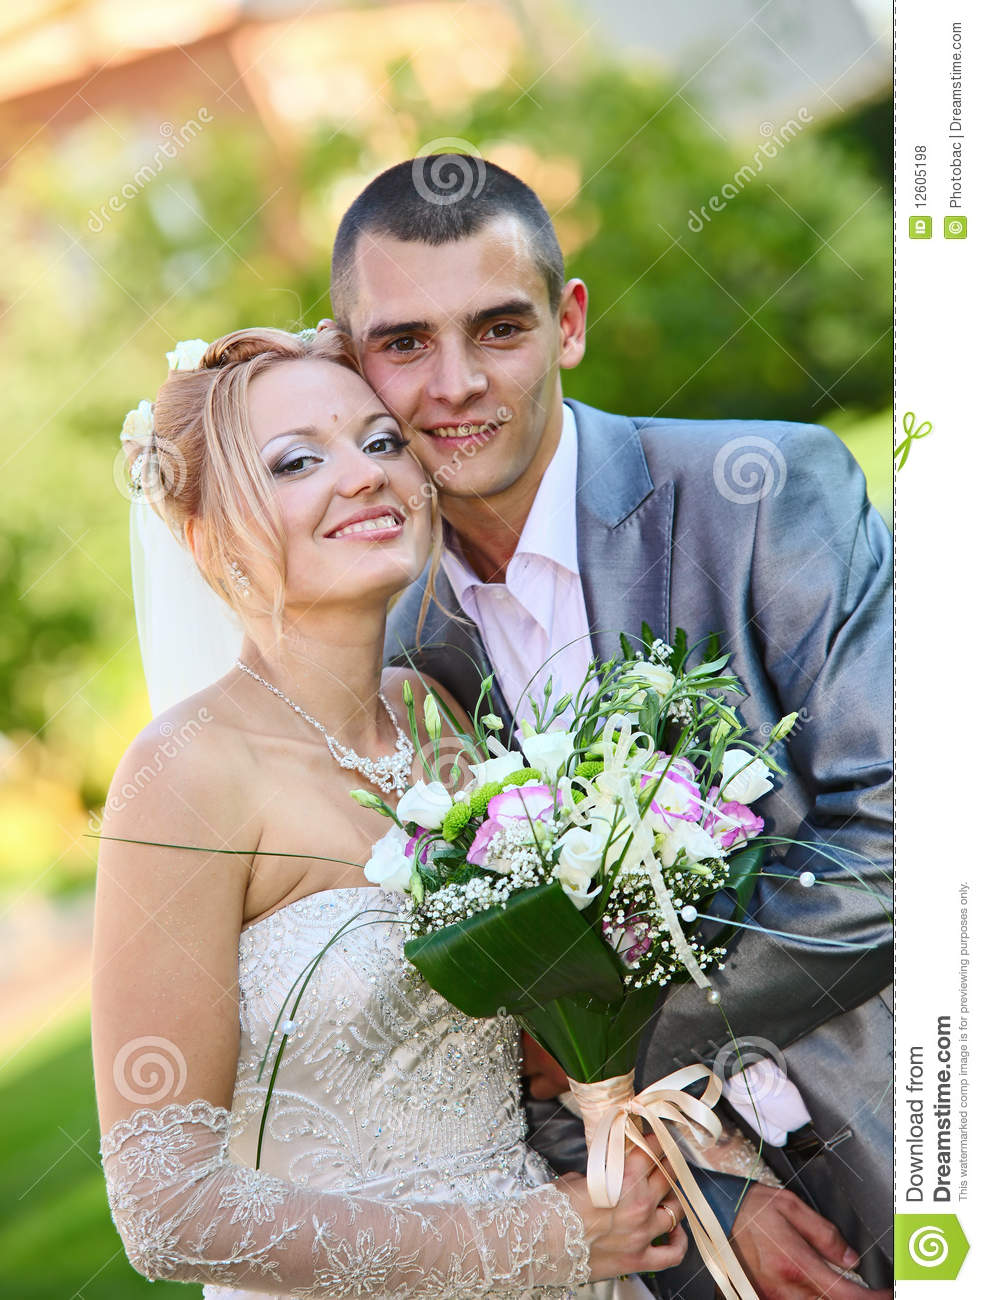 More similar stock images of newly married couple